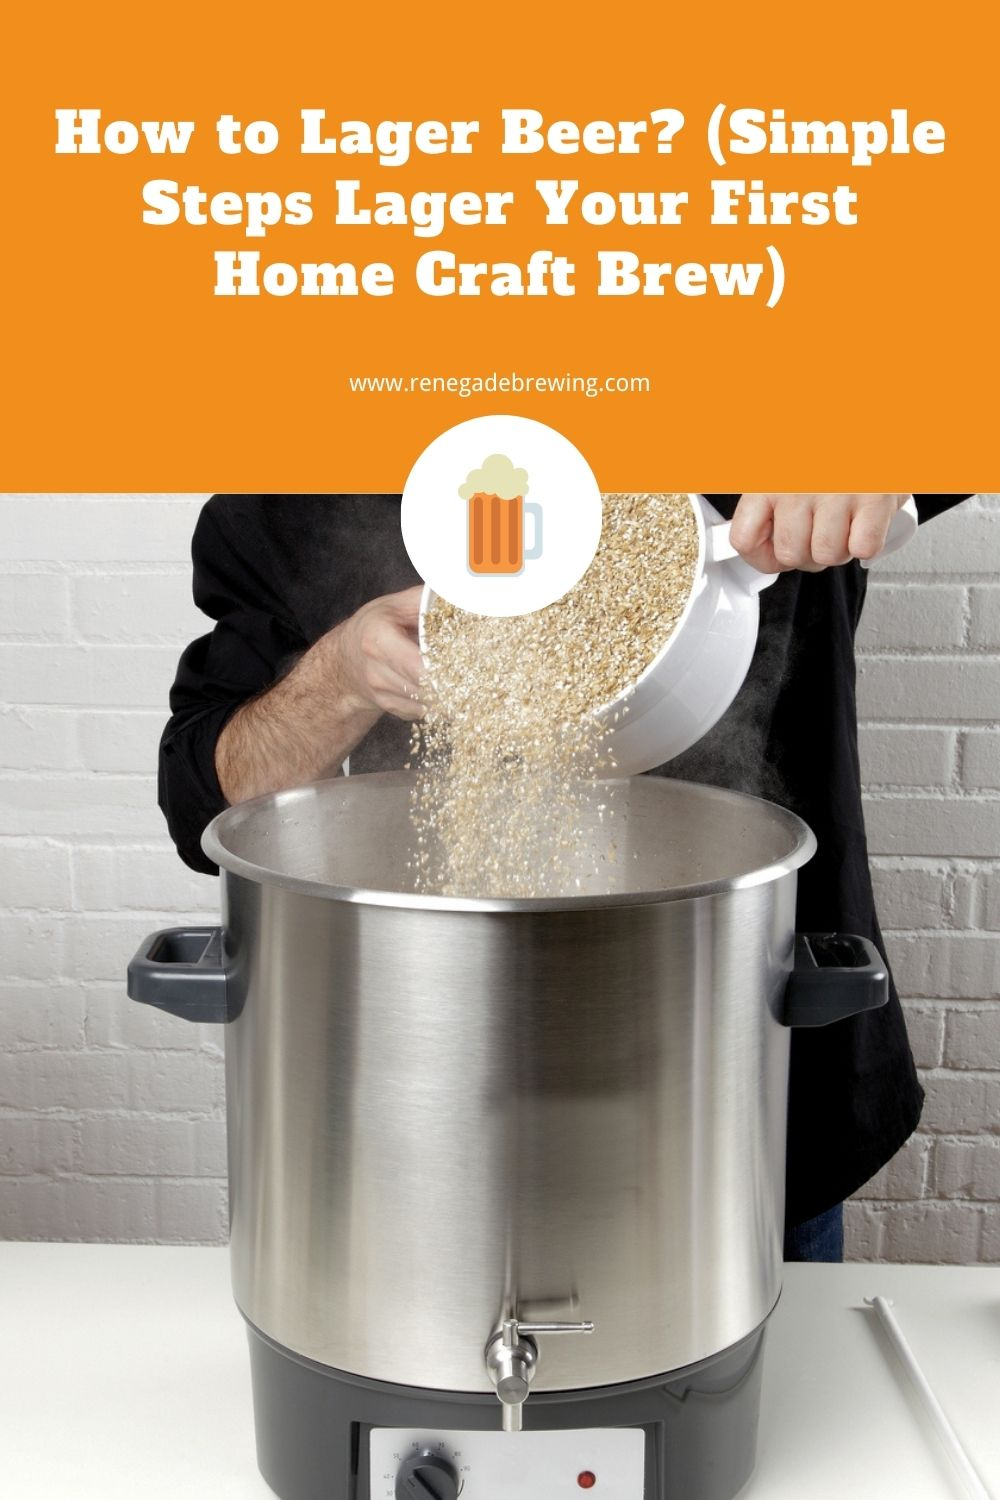 How to Lager Beer (Simple Steps Lager Your First Home Craft Brew) 2